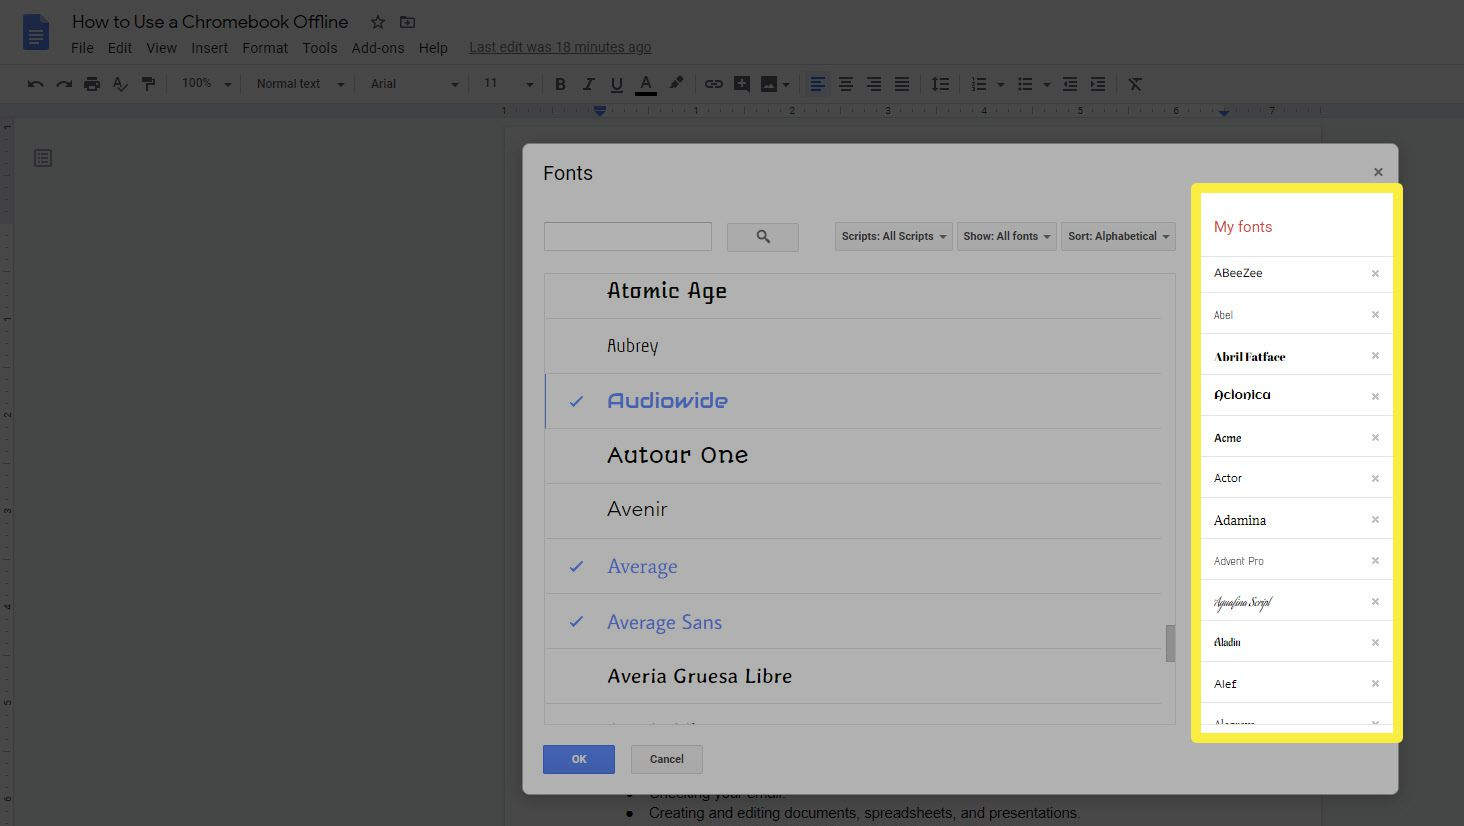 The My Fonts list in the Google Docs Fonts Picker.